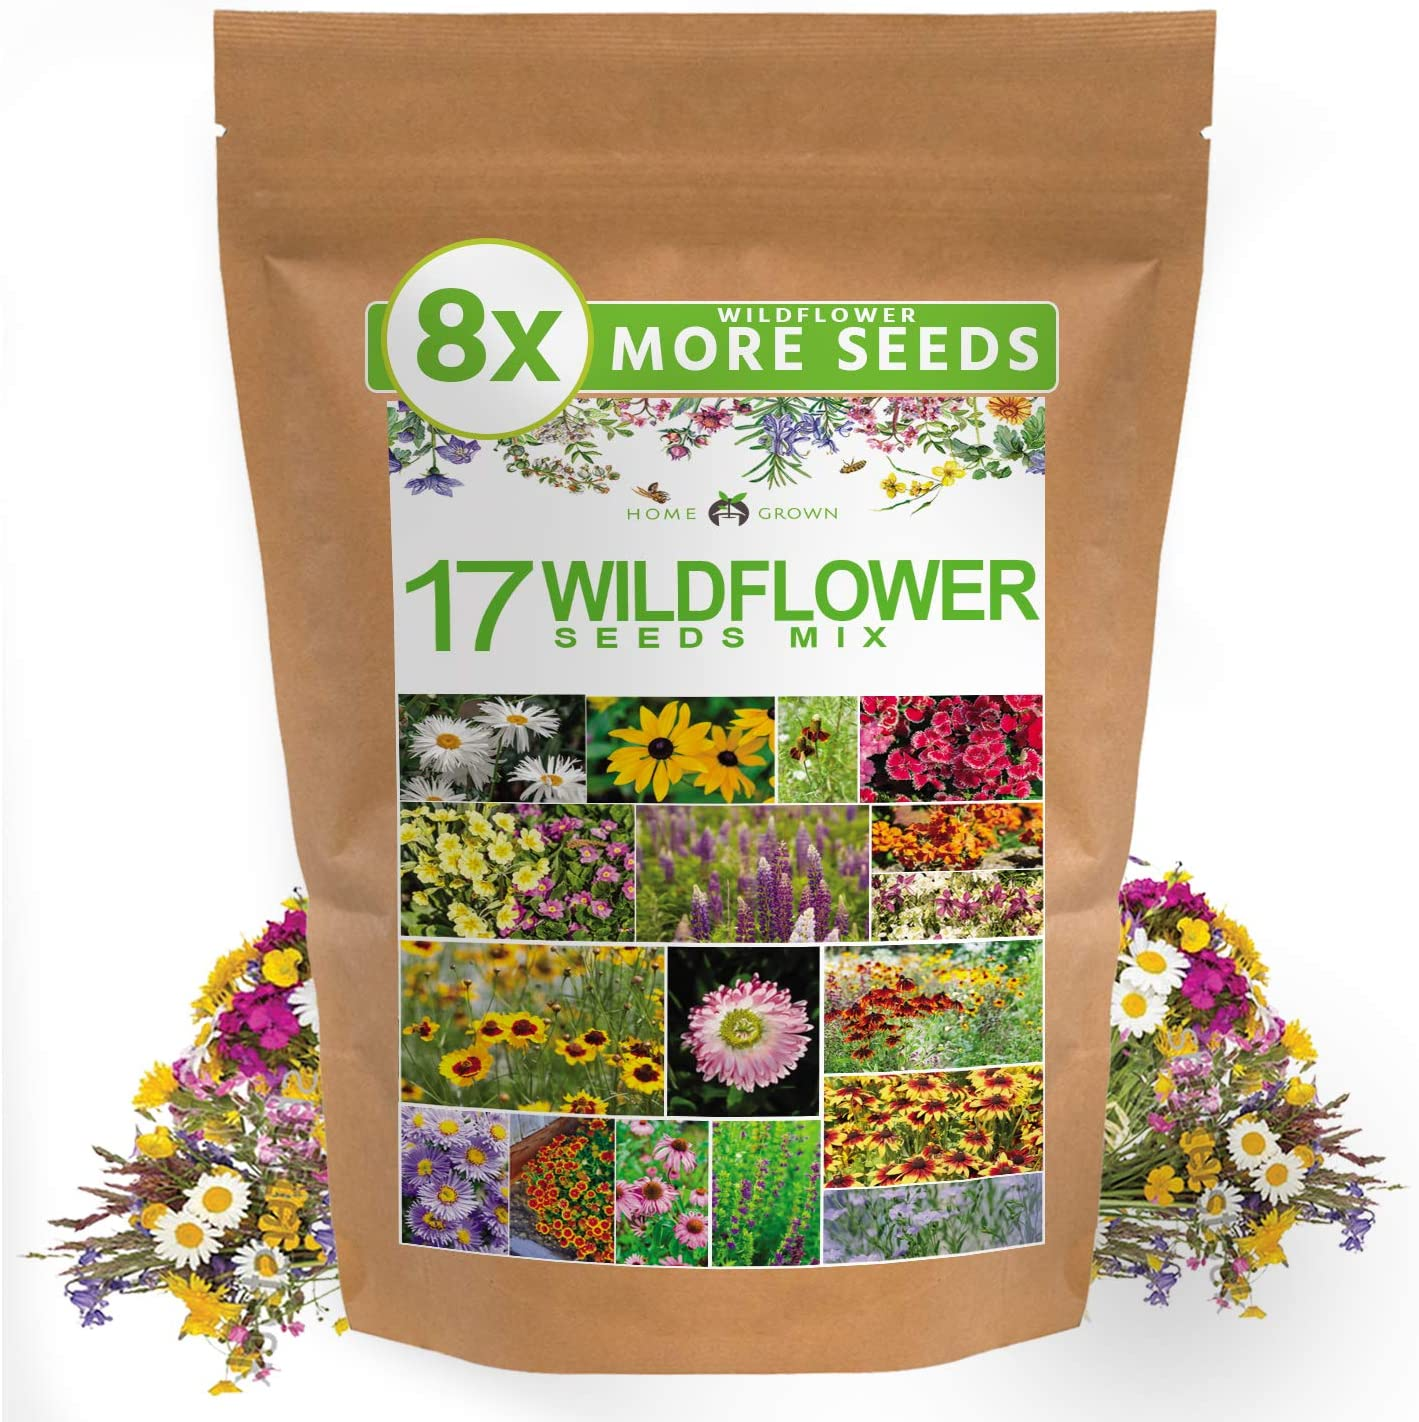 Wildflower Seeds - Flower Seed Pack [17 Variety] - Perennial Flower Seeds for Attracting Birds & Butterflies - Flower Seeds for Planting Outdoor - Non GMO, Open Pollinated - Flower Garden Seeds